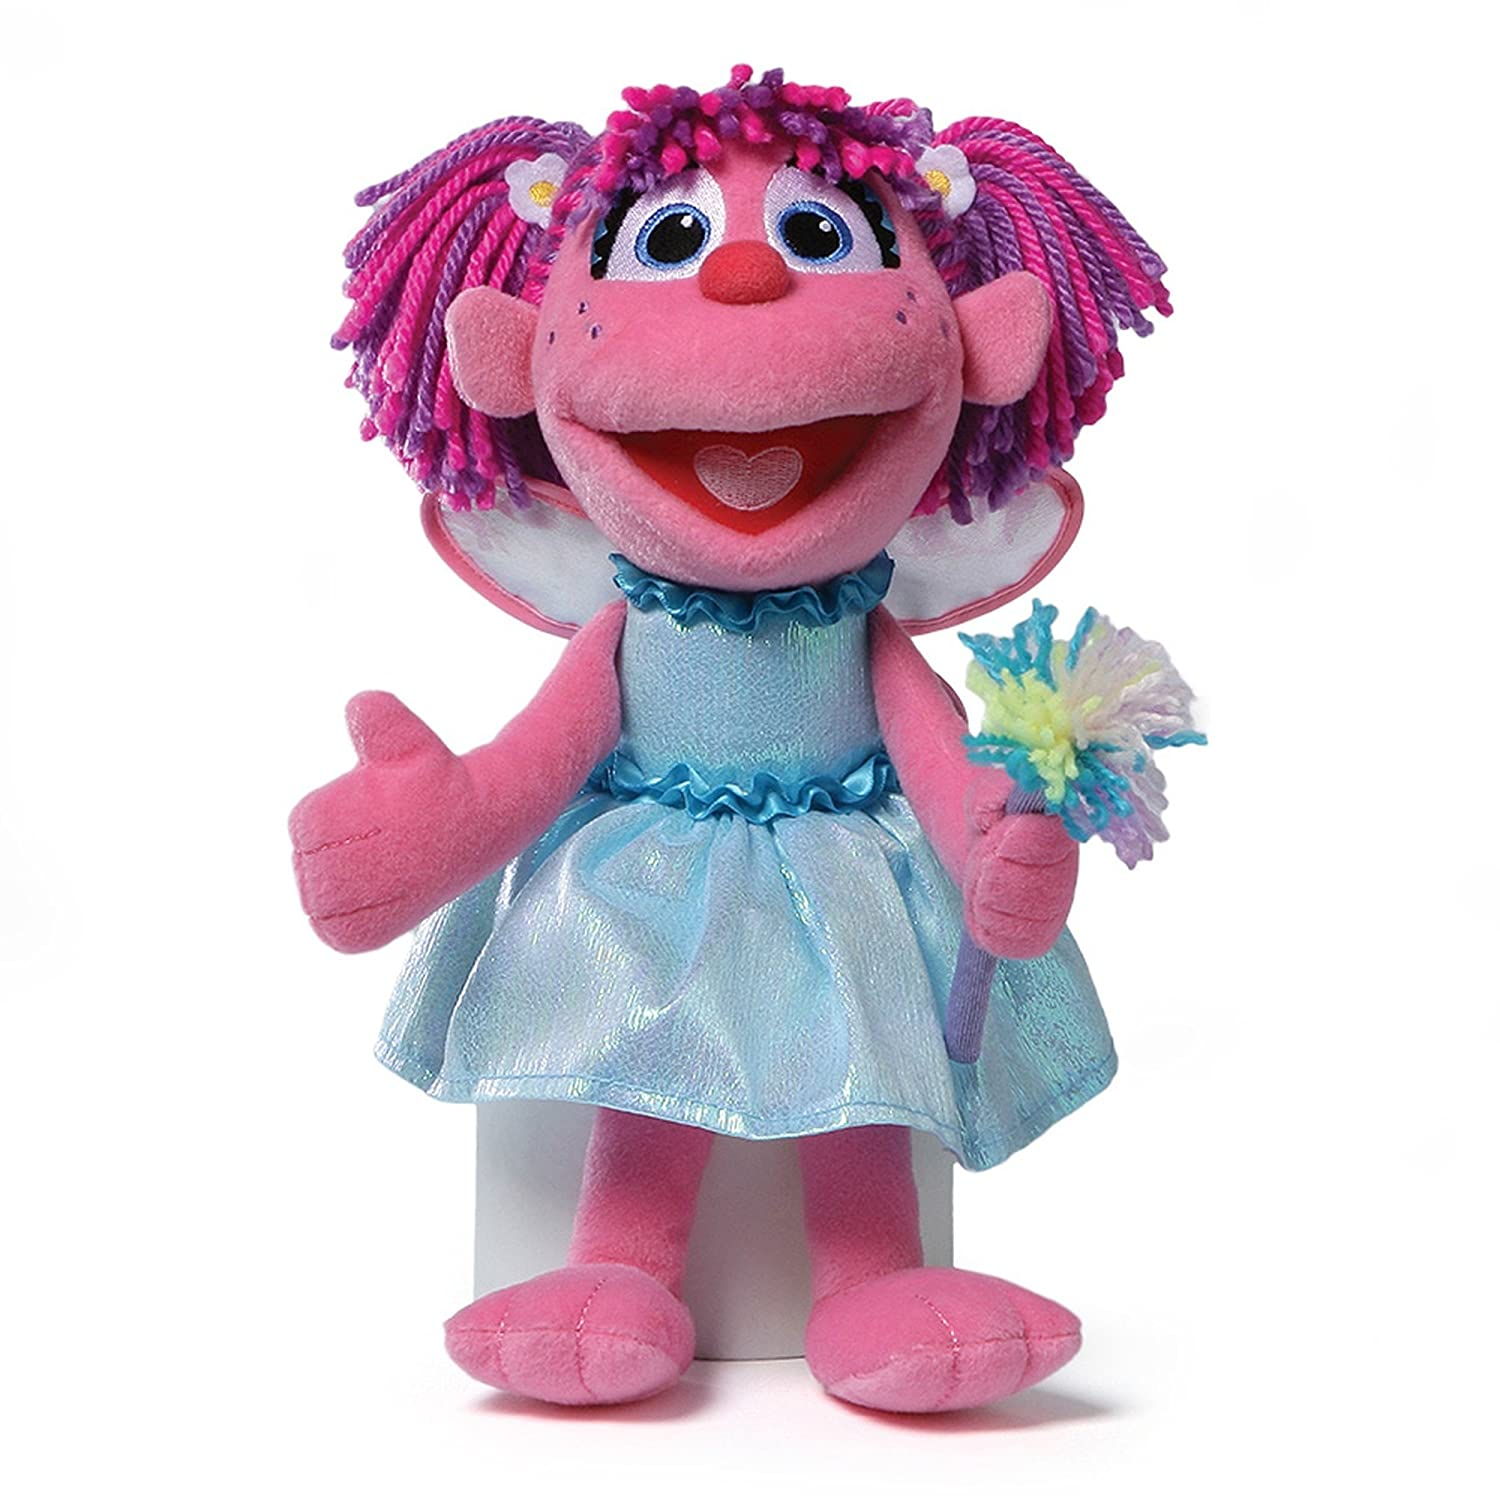 GUND Sesame Street Everyday from Abby Cadabby 12 Plush